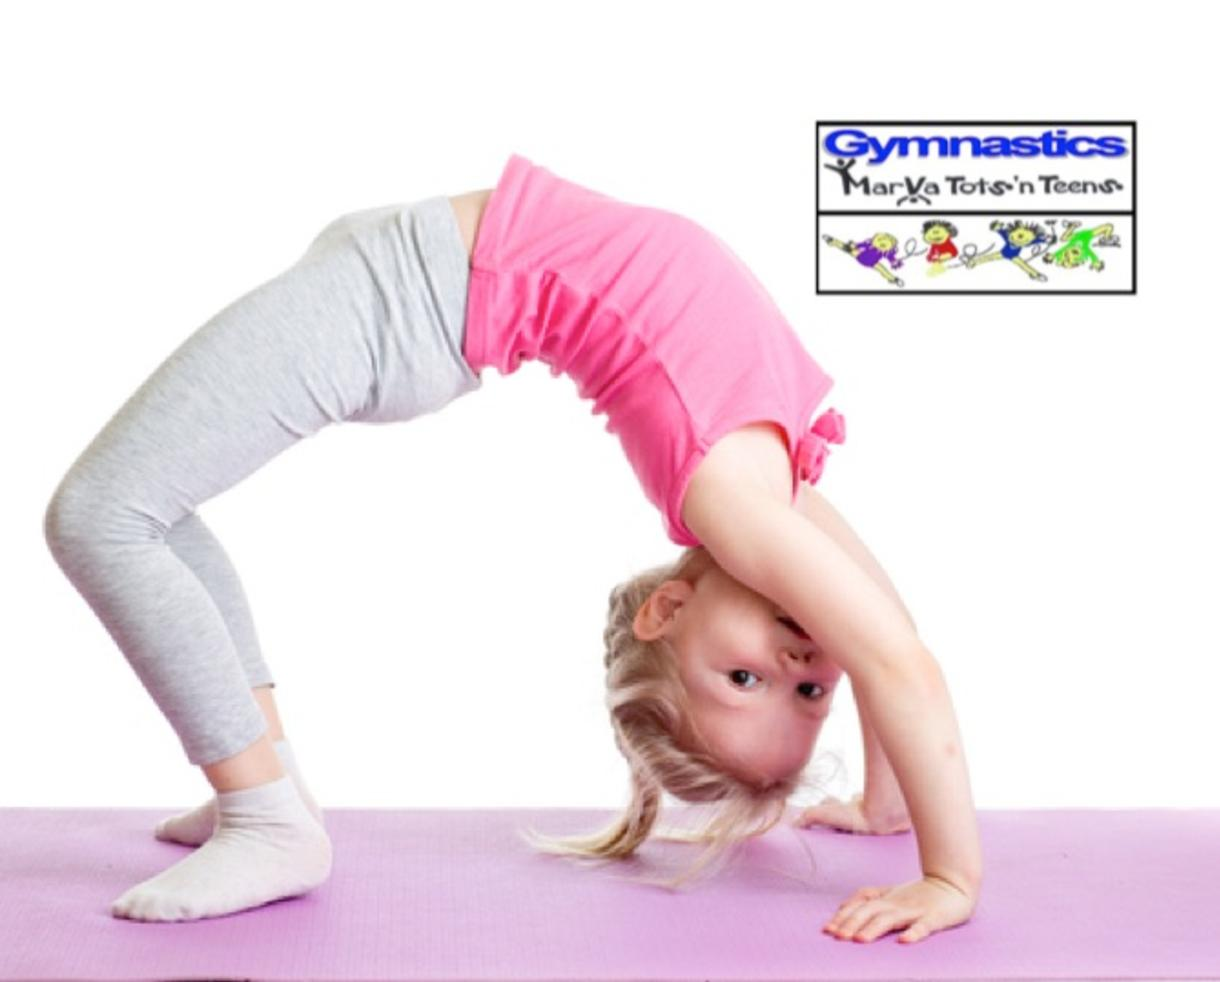 $109 or $184 for MarVaTots n' Teens Gymnastics Camp for Ages 3-18 in Rockville (Up to 23% Off)